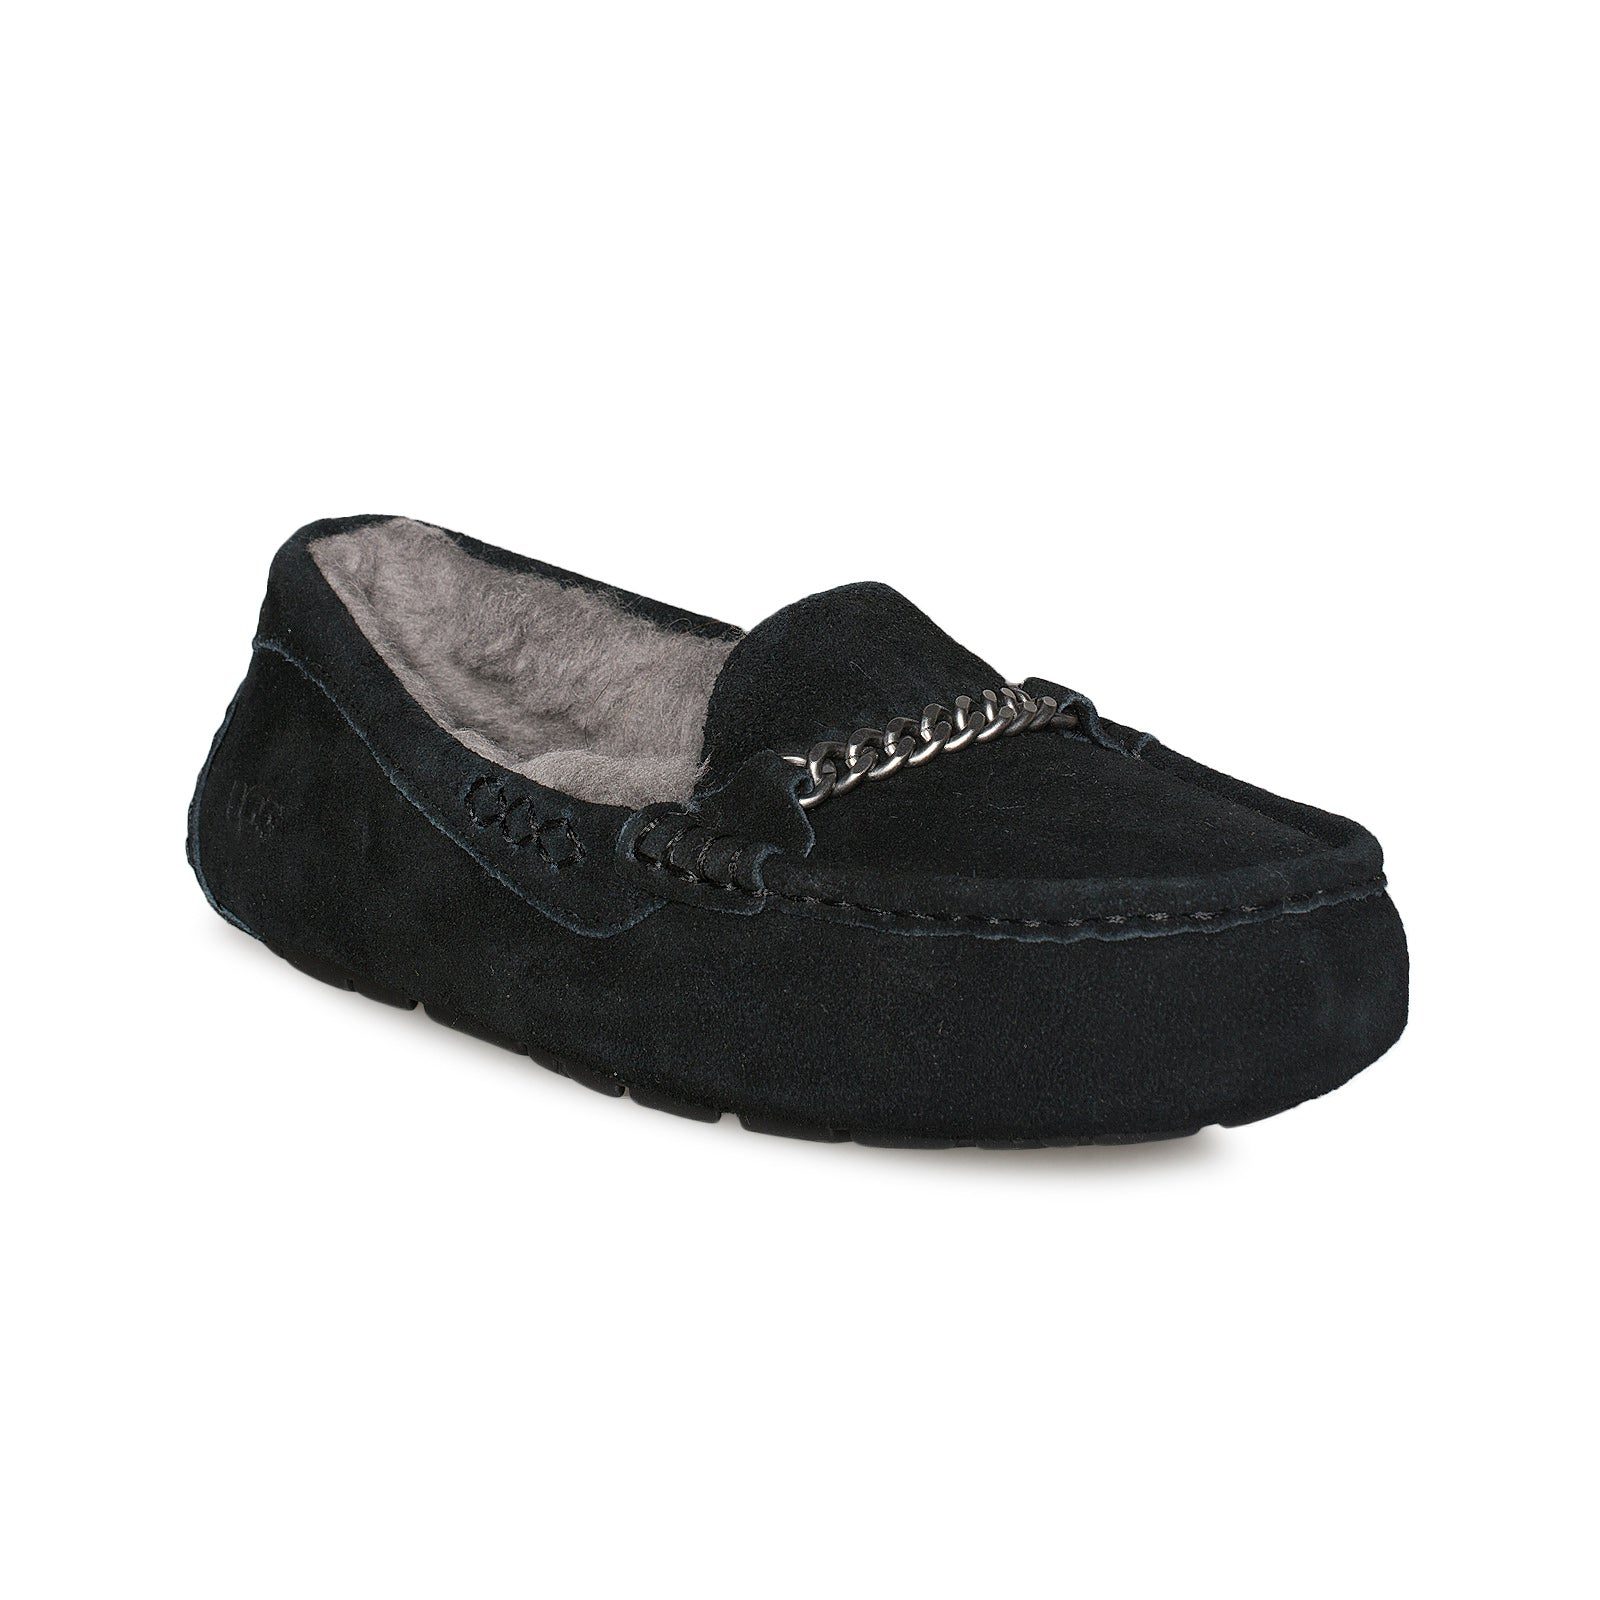 37c8226aebb UGG Ansley Charms Black Slippers - Women s - MyCozyBoots